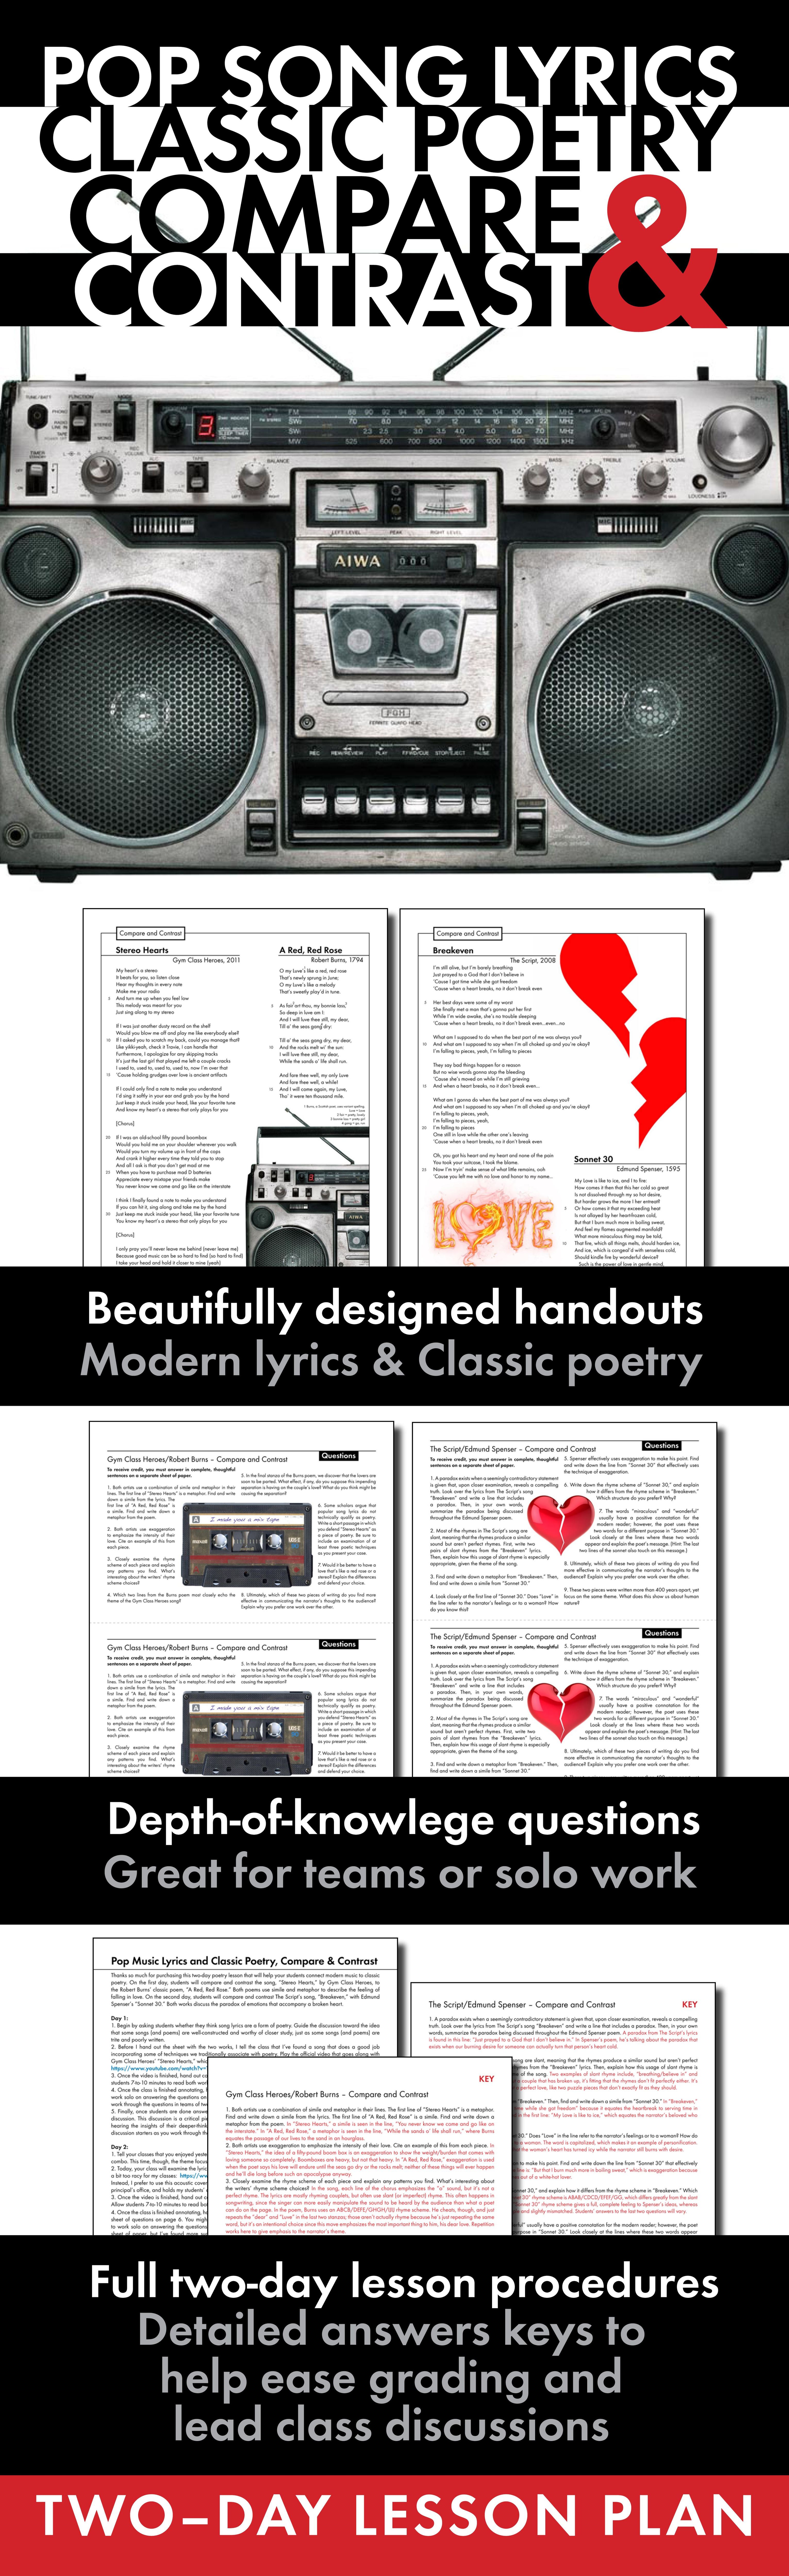 Pop Music Song Lyrics And Classic Poetry Compare